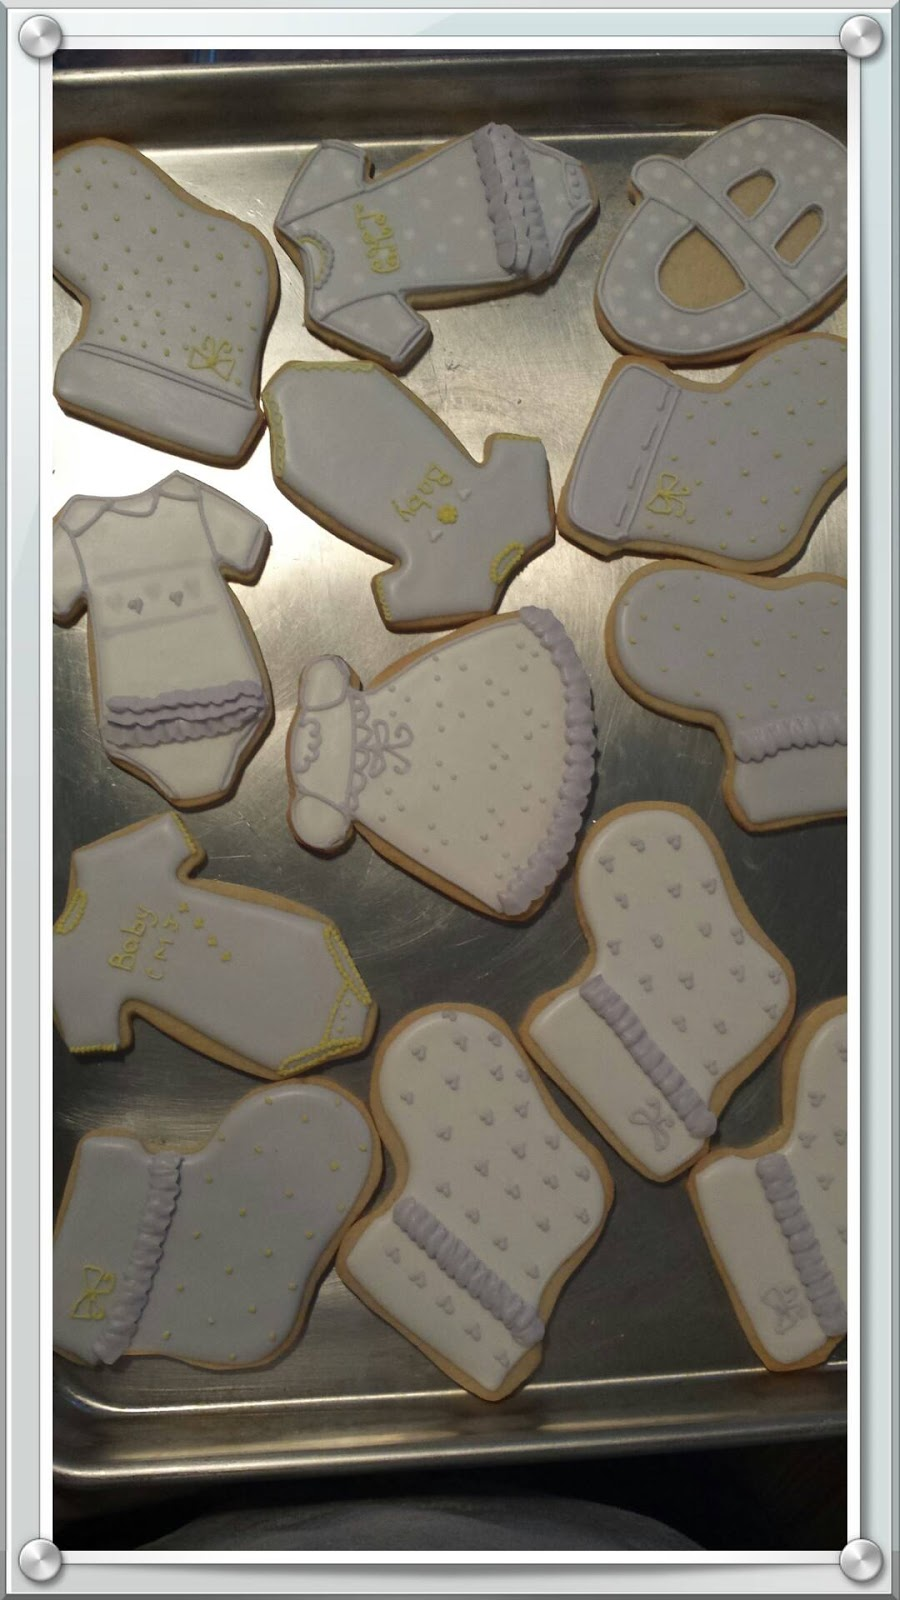 Cake Decorating Classes Near Charlotte Nc : Cakes By Diana in Charlotte NC,: Baby Shower Cookies